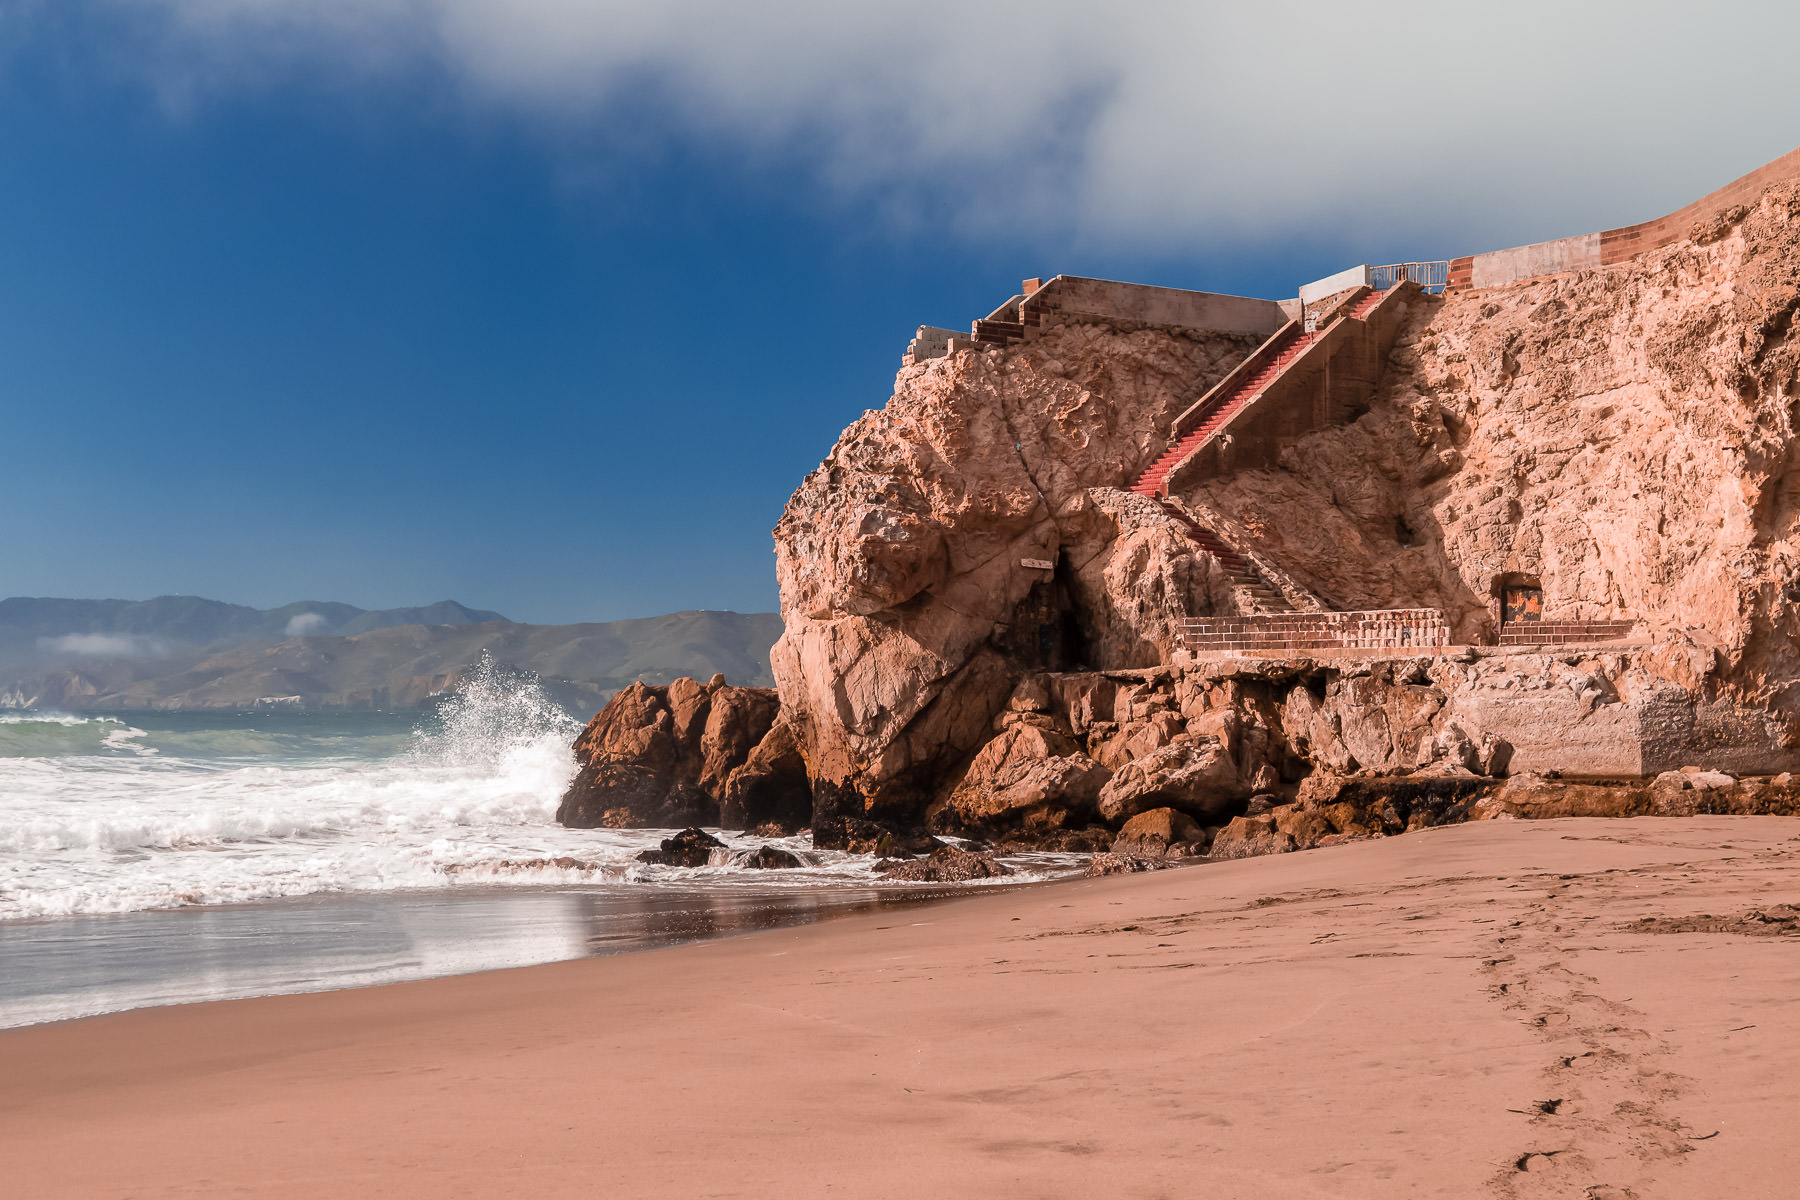 An old staircase leads from the beach near the Sutro Baths ruins at San Francisco's Lands End.